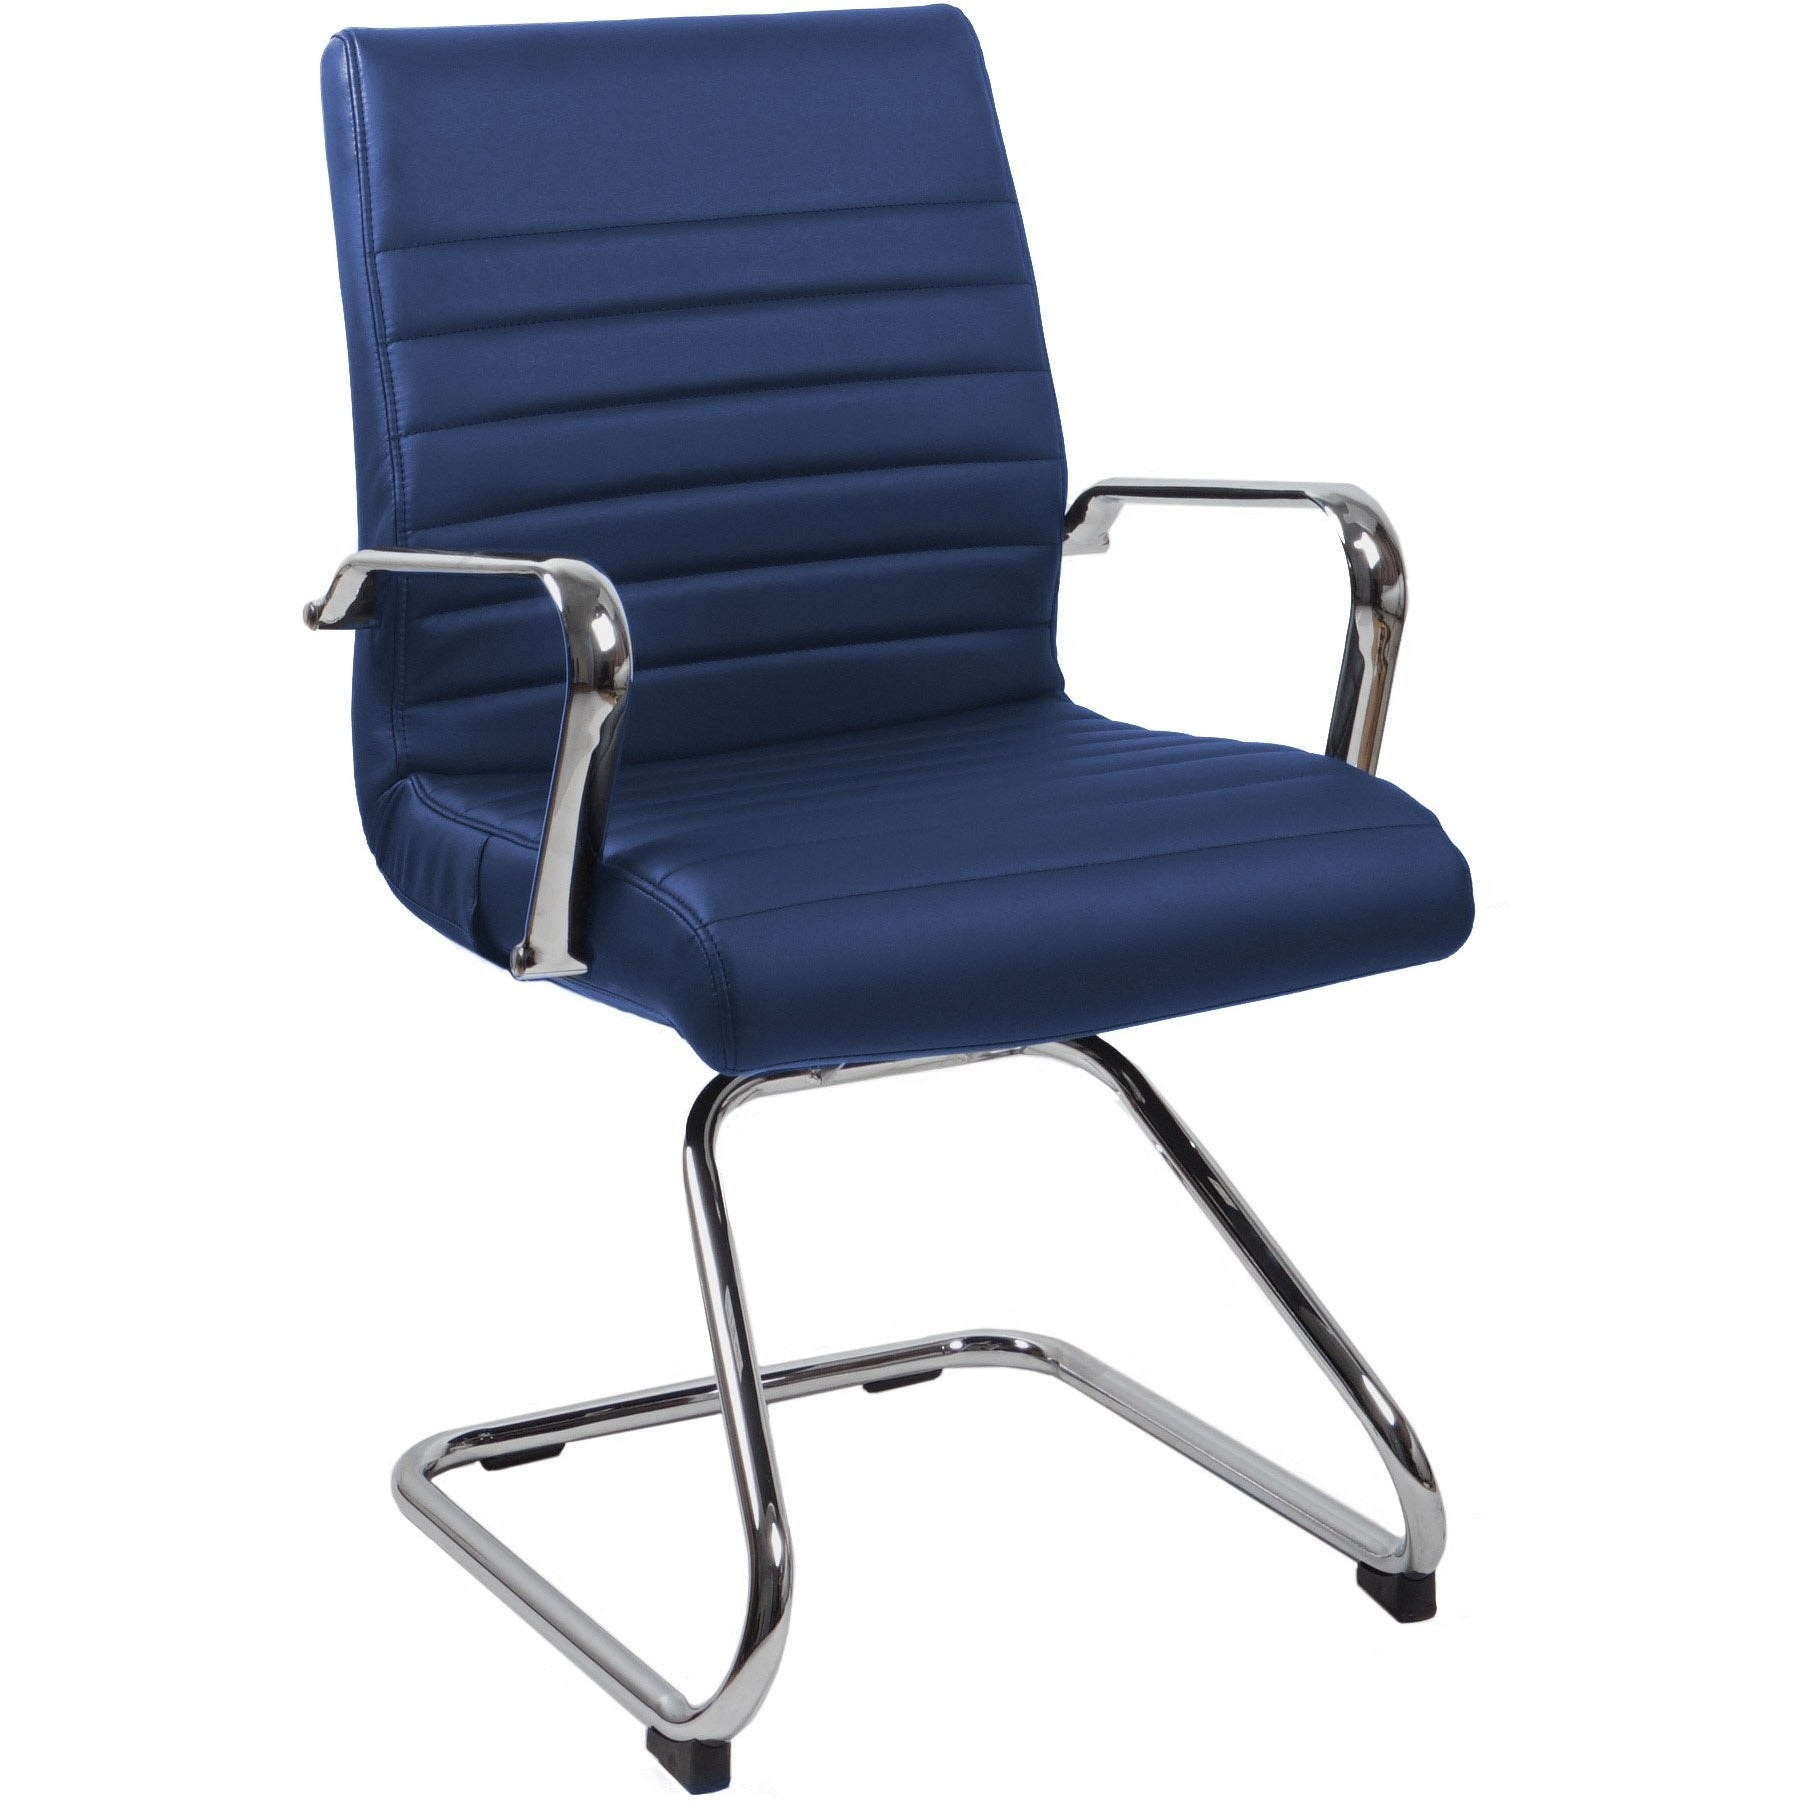 RealBiz II Modern Comfort Series Visitor LeatherPro Chair, Midnight Blue